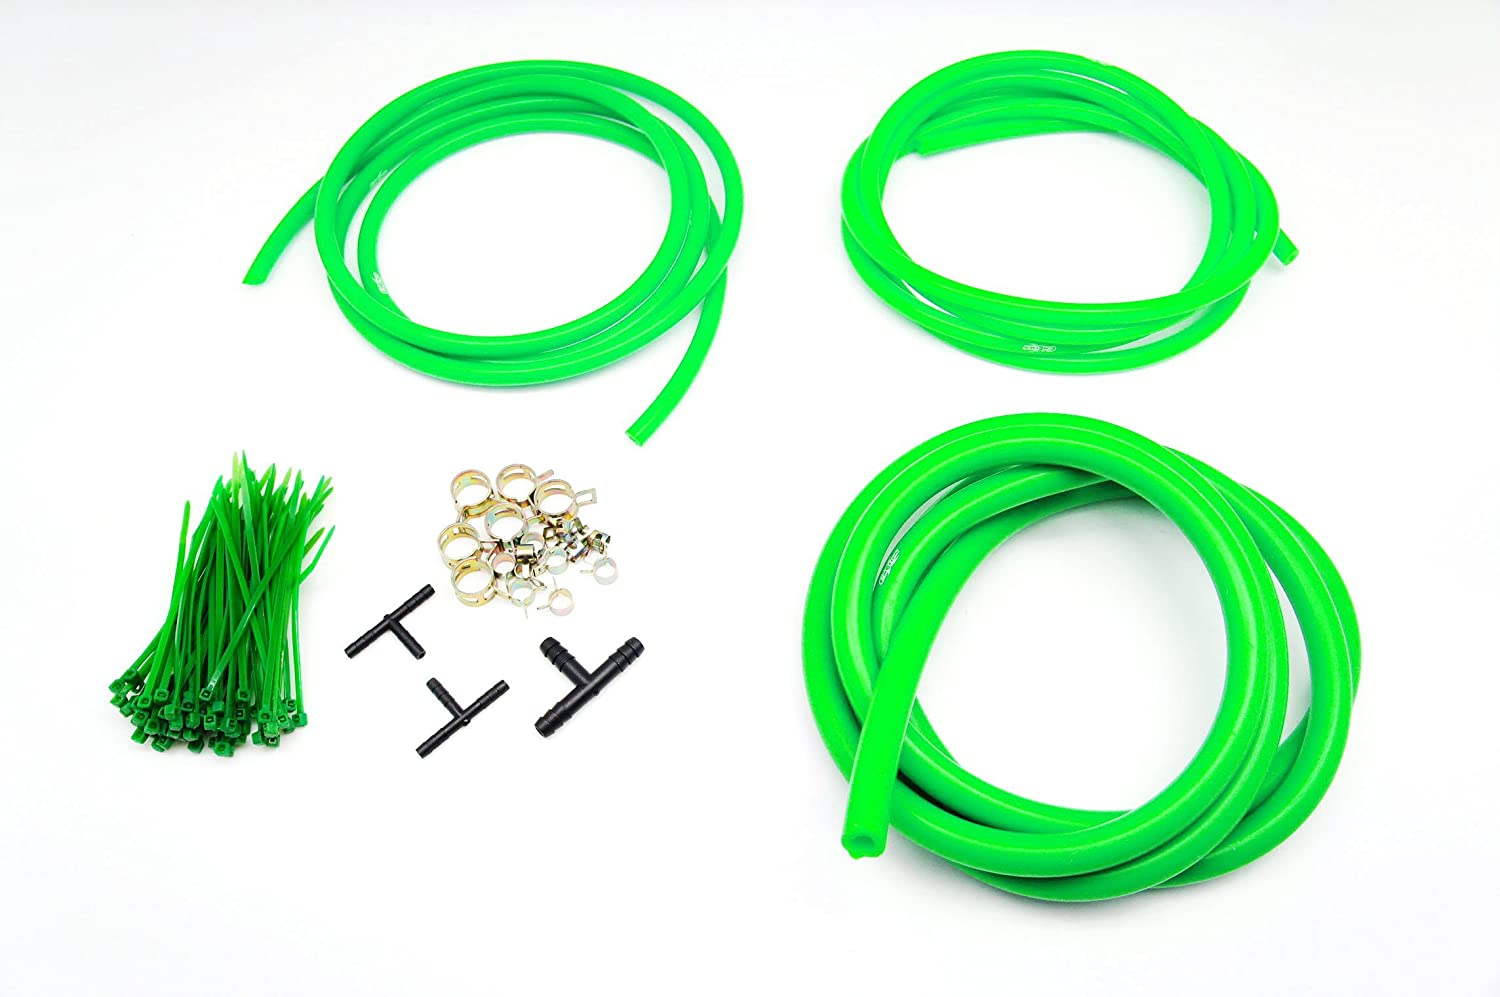 Autobahn88 Silicone Vacuum Hose Dress Up DIY Kit, Universal Fit All Nissan,Subaru,MMC, Toyota,Honda,Mazda, Mustang,Chevrolet,Ford, Suzuki,Citroen,Audi,BMW, Benz,Mini,Volkswagen,Fiat, etc (Green)